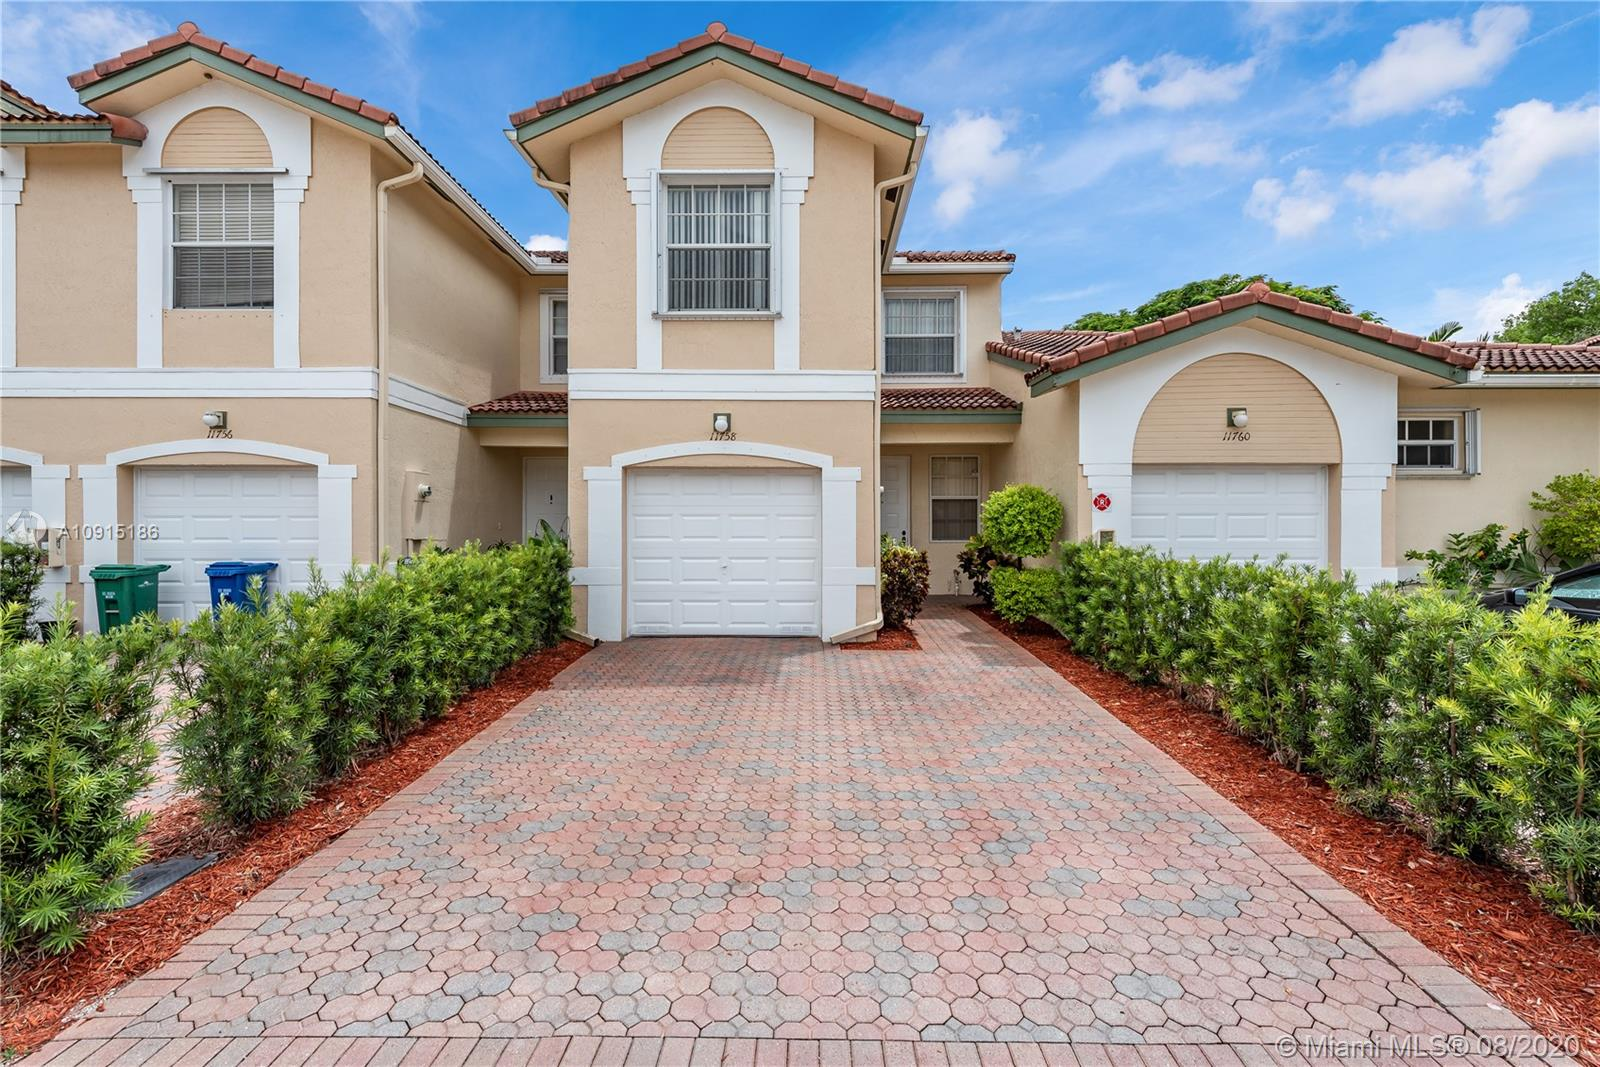 Amazing upgraded & very well maintained townhouse in the Coral Springs gated community of Wyndham Lakes East. Located right across from the community pool & guest parking. This home features an upgraded kitchen with granite counter tops, Tile floors throughout first & second level. Kitchen/Family & Living/Dining room combinations. Second floor features a spacious master bedroom with a walk-in closet & master bath with granite counter top, dual sinks & a tiled stand-up shower. Guest bedrooms with a full guest bathroom with dual sinks & shower/tub combination. Laundry/Utility room. This home has a 1 car garage & a nice patio/backyard area with no neighbors behind. This home will not last!!